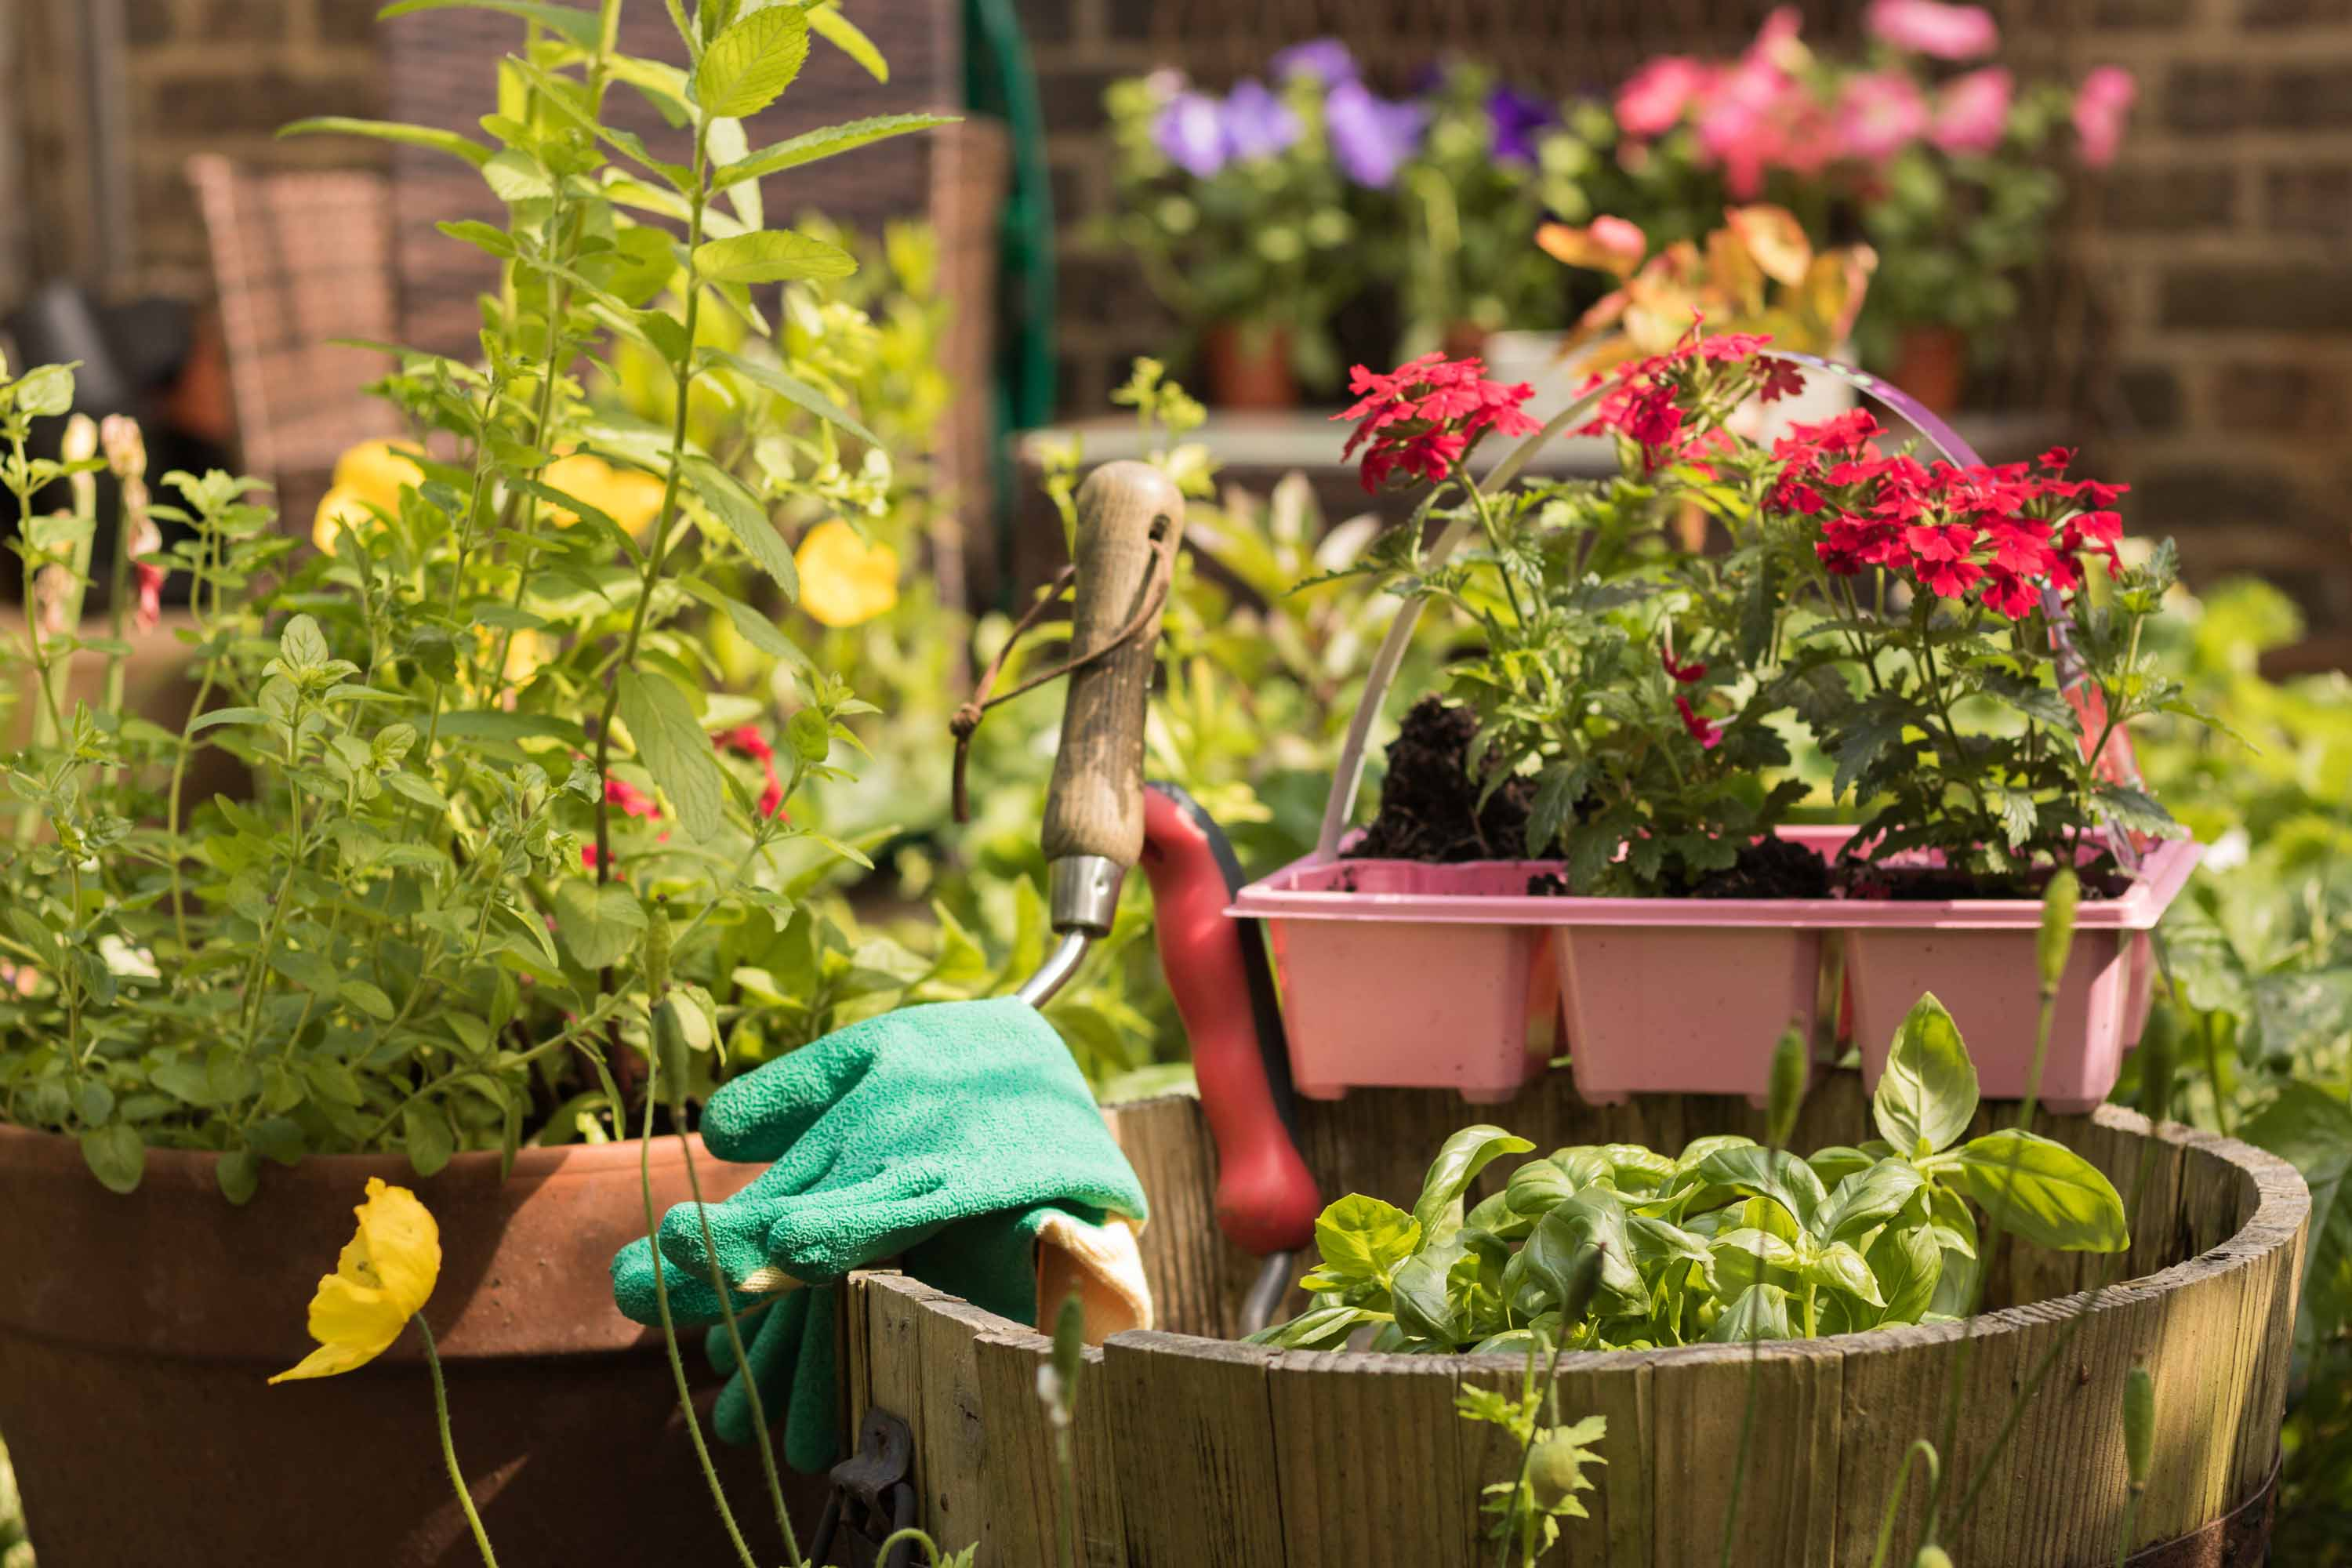 Using Native Plants In A Home Garden Can Reduce Maintenance And The Need  For Frequent Watering. Local Gardeners Can Learn More About The Topic From  Sue ...